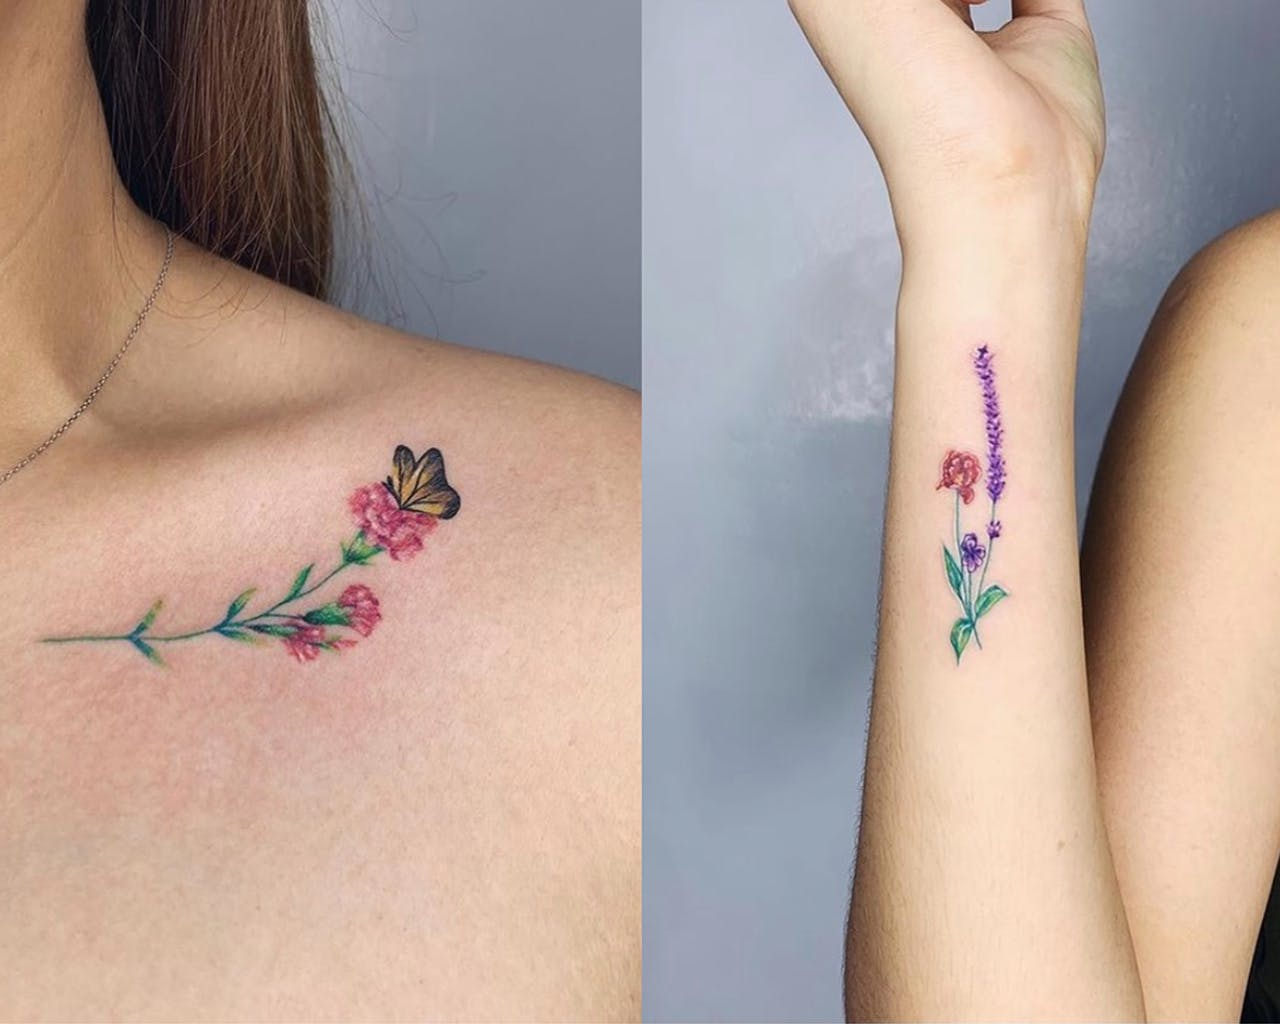 Finally Decided To Get A Tattoo? Here's Where You Can Book Safe And Hassle-Free Appointments